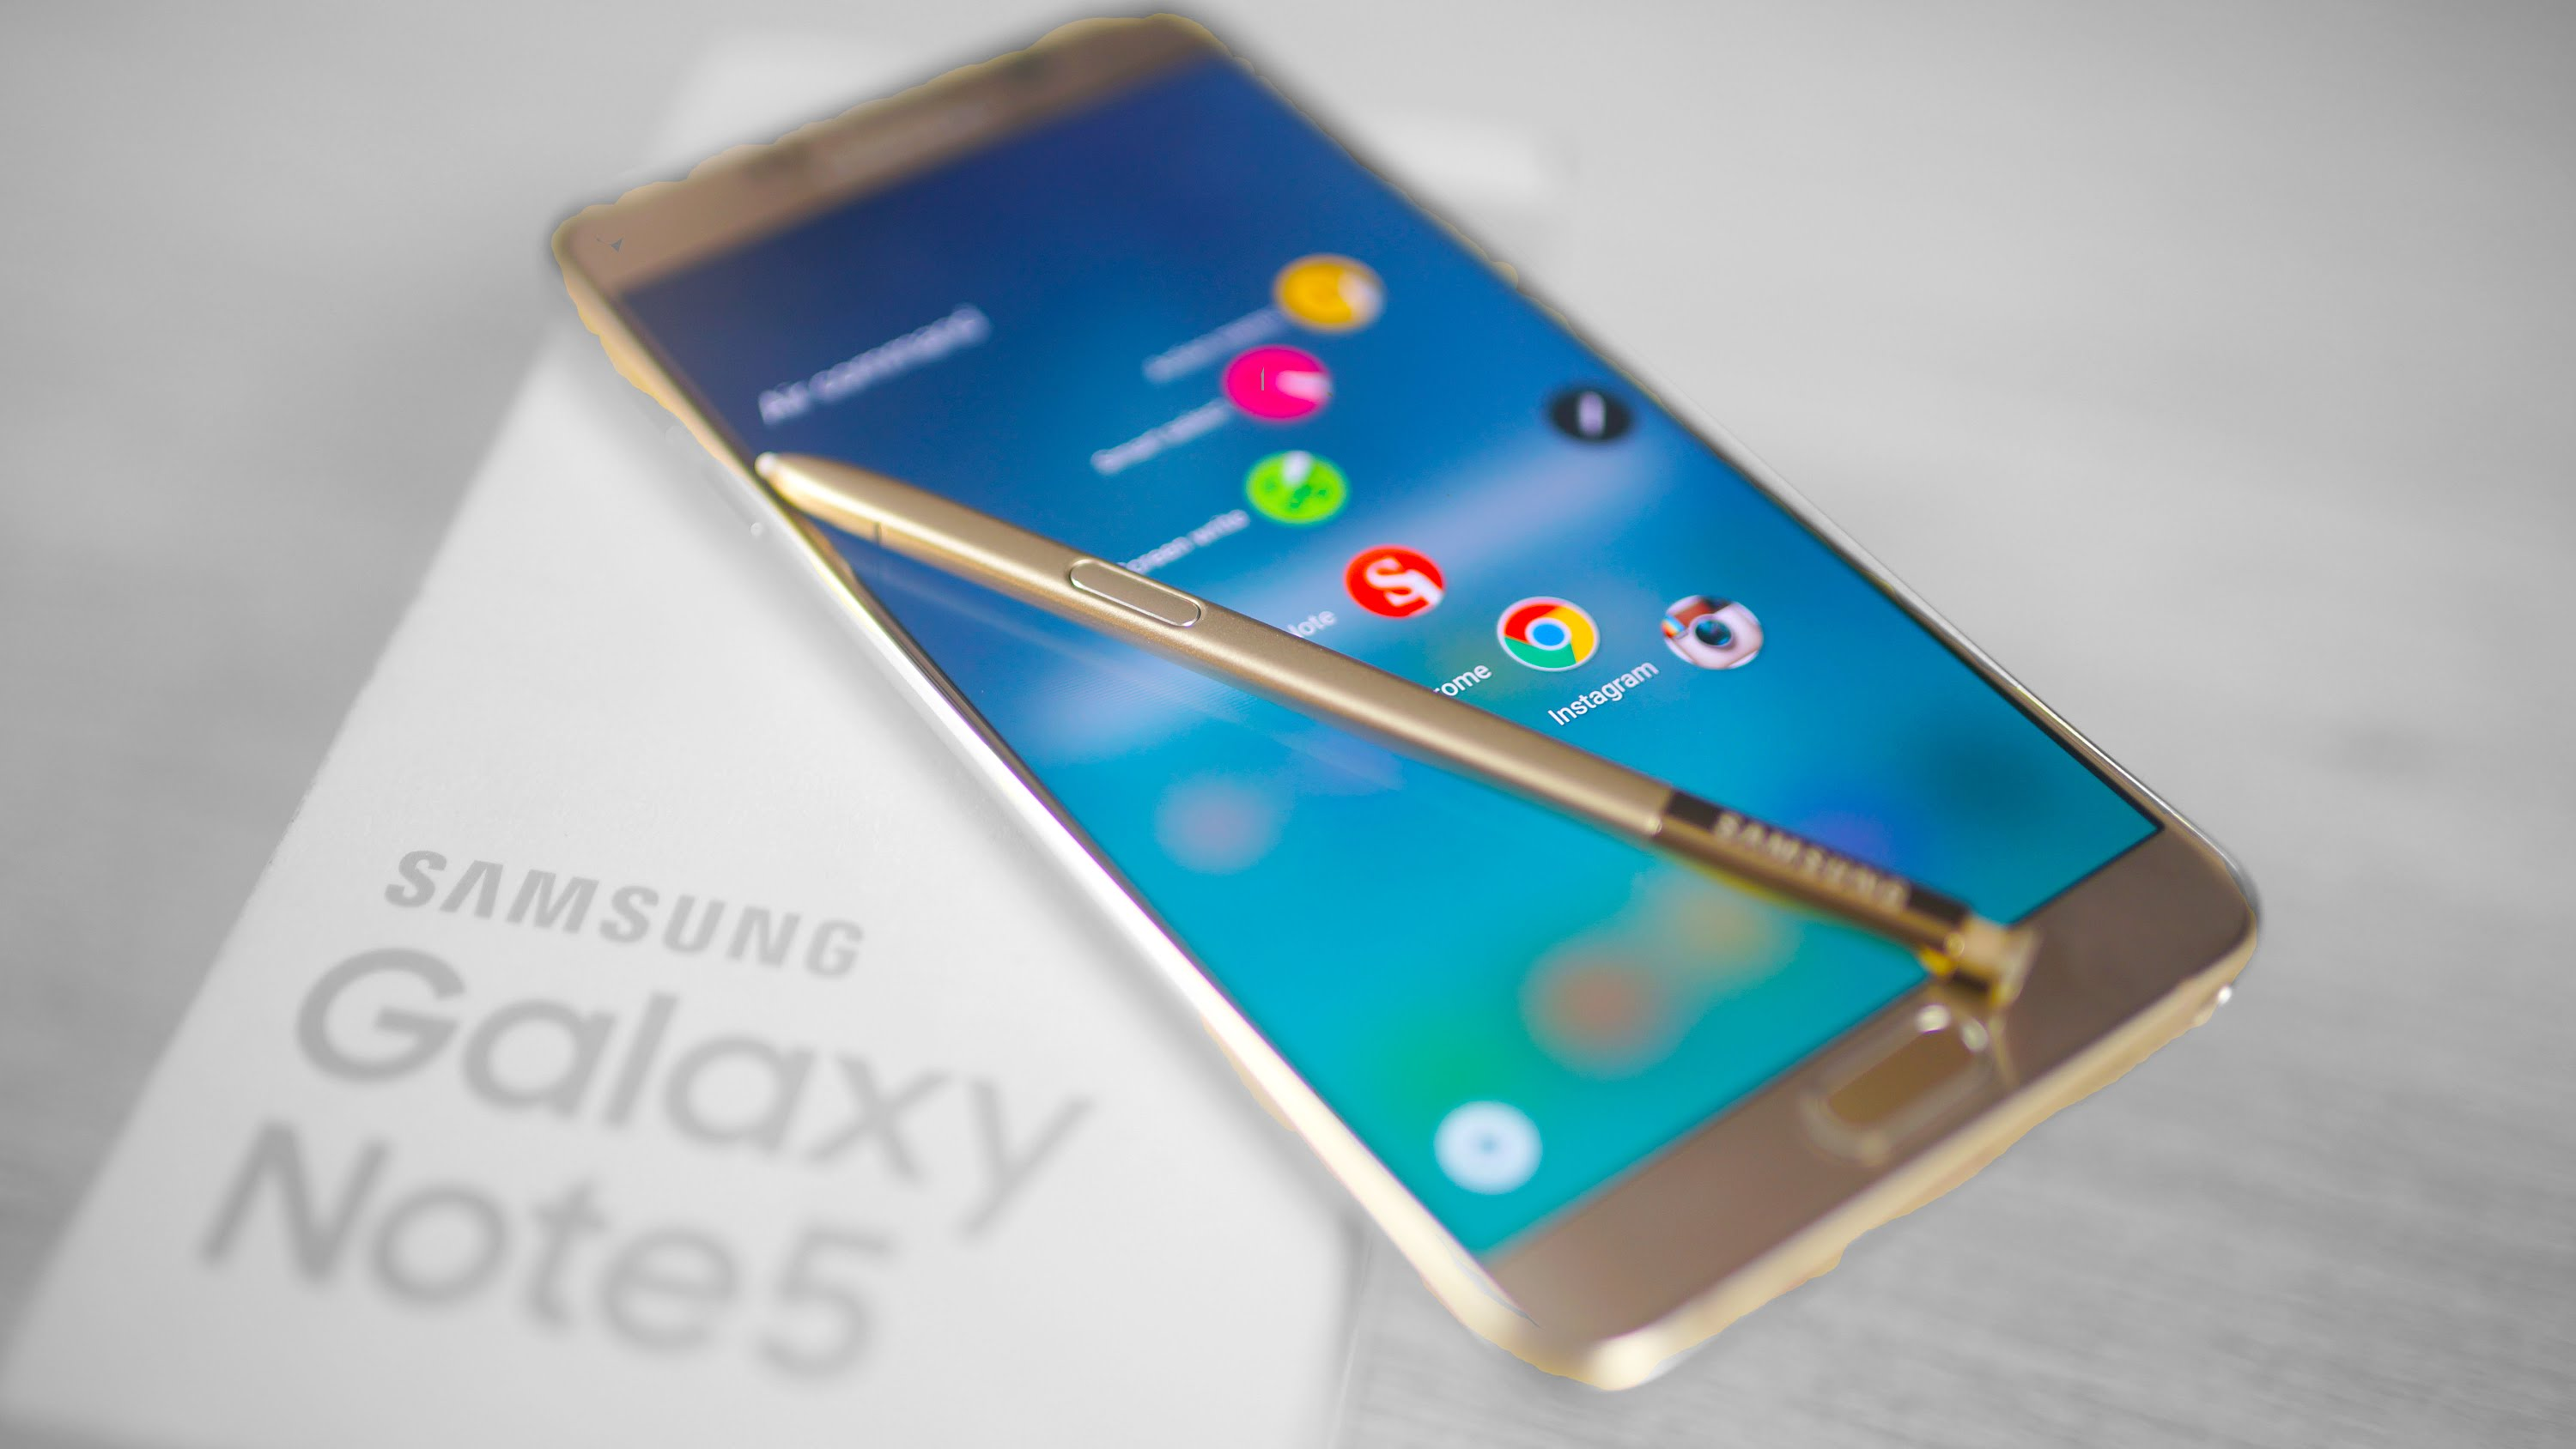 Galaxy Note 5 update bring up Samsung Pay in India